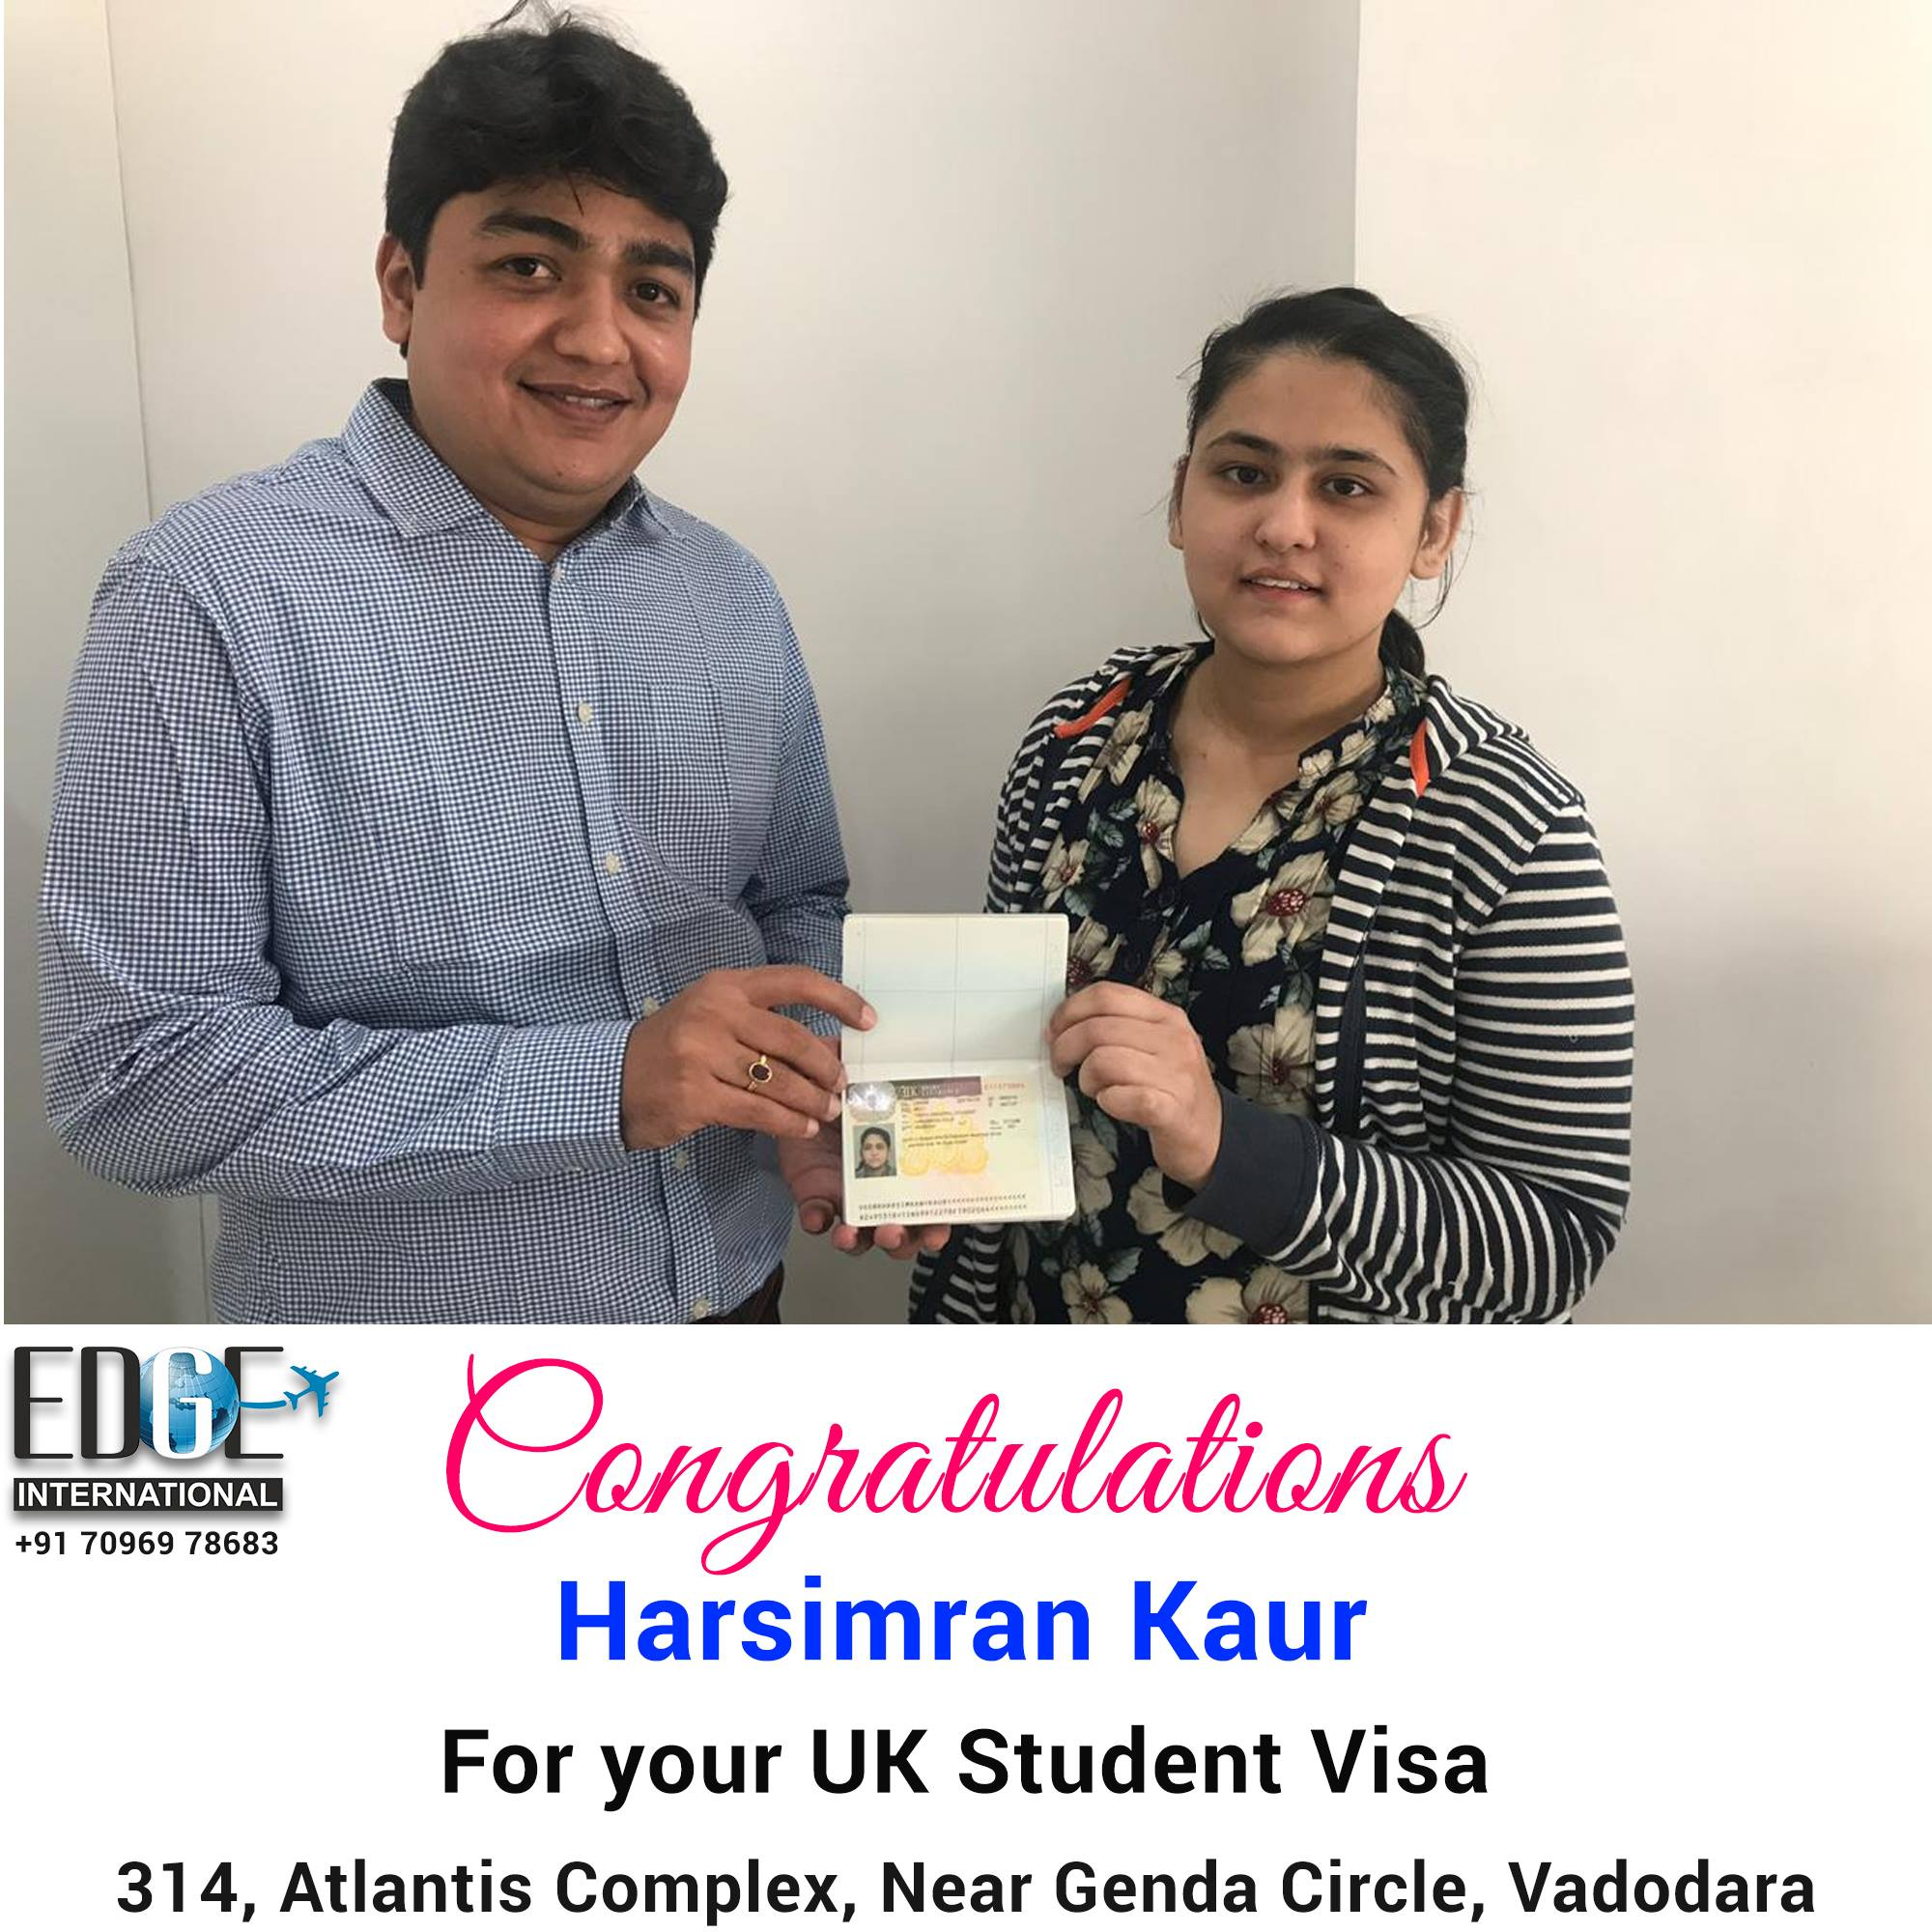 Our heartily Congratulations to Harsimran Kaur A student from